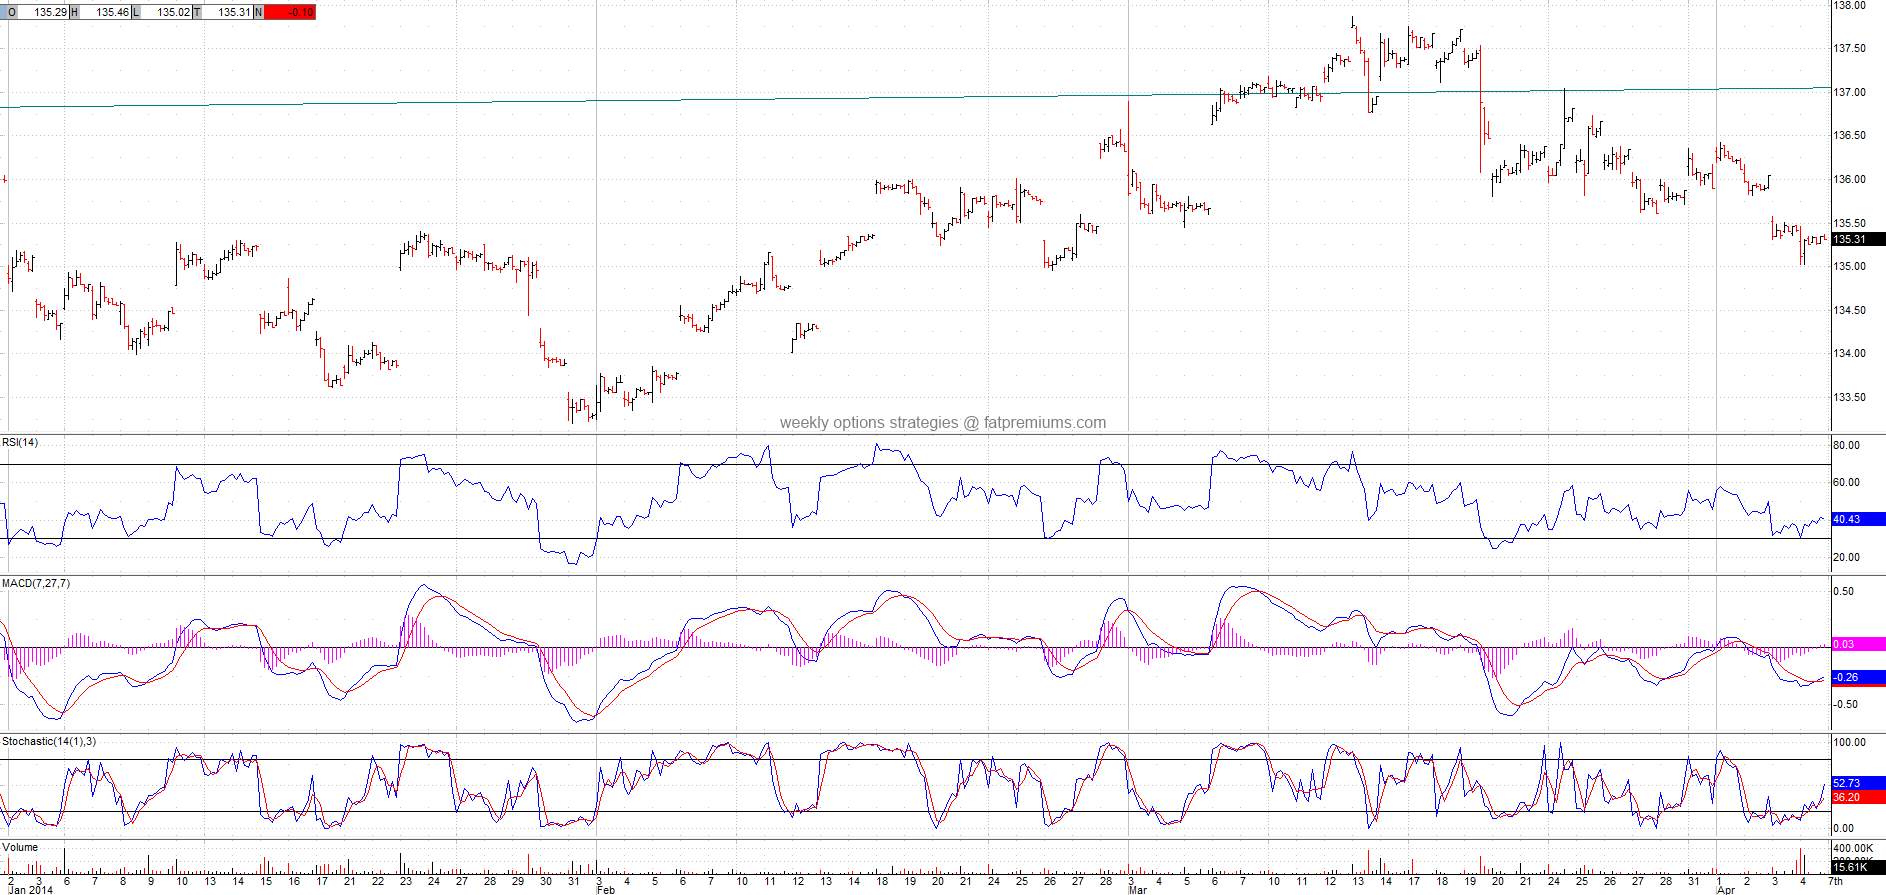 Euro Trust (NYSEARCA:FXE) Hourly Chart (2014-04-04) Bullish